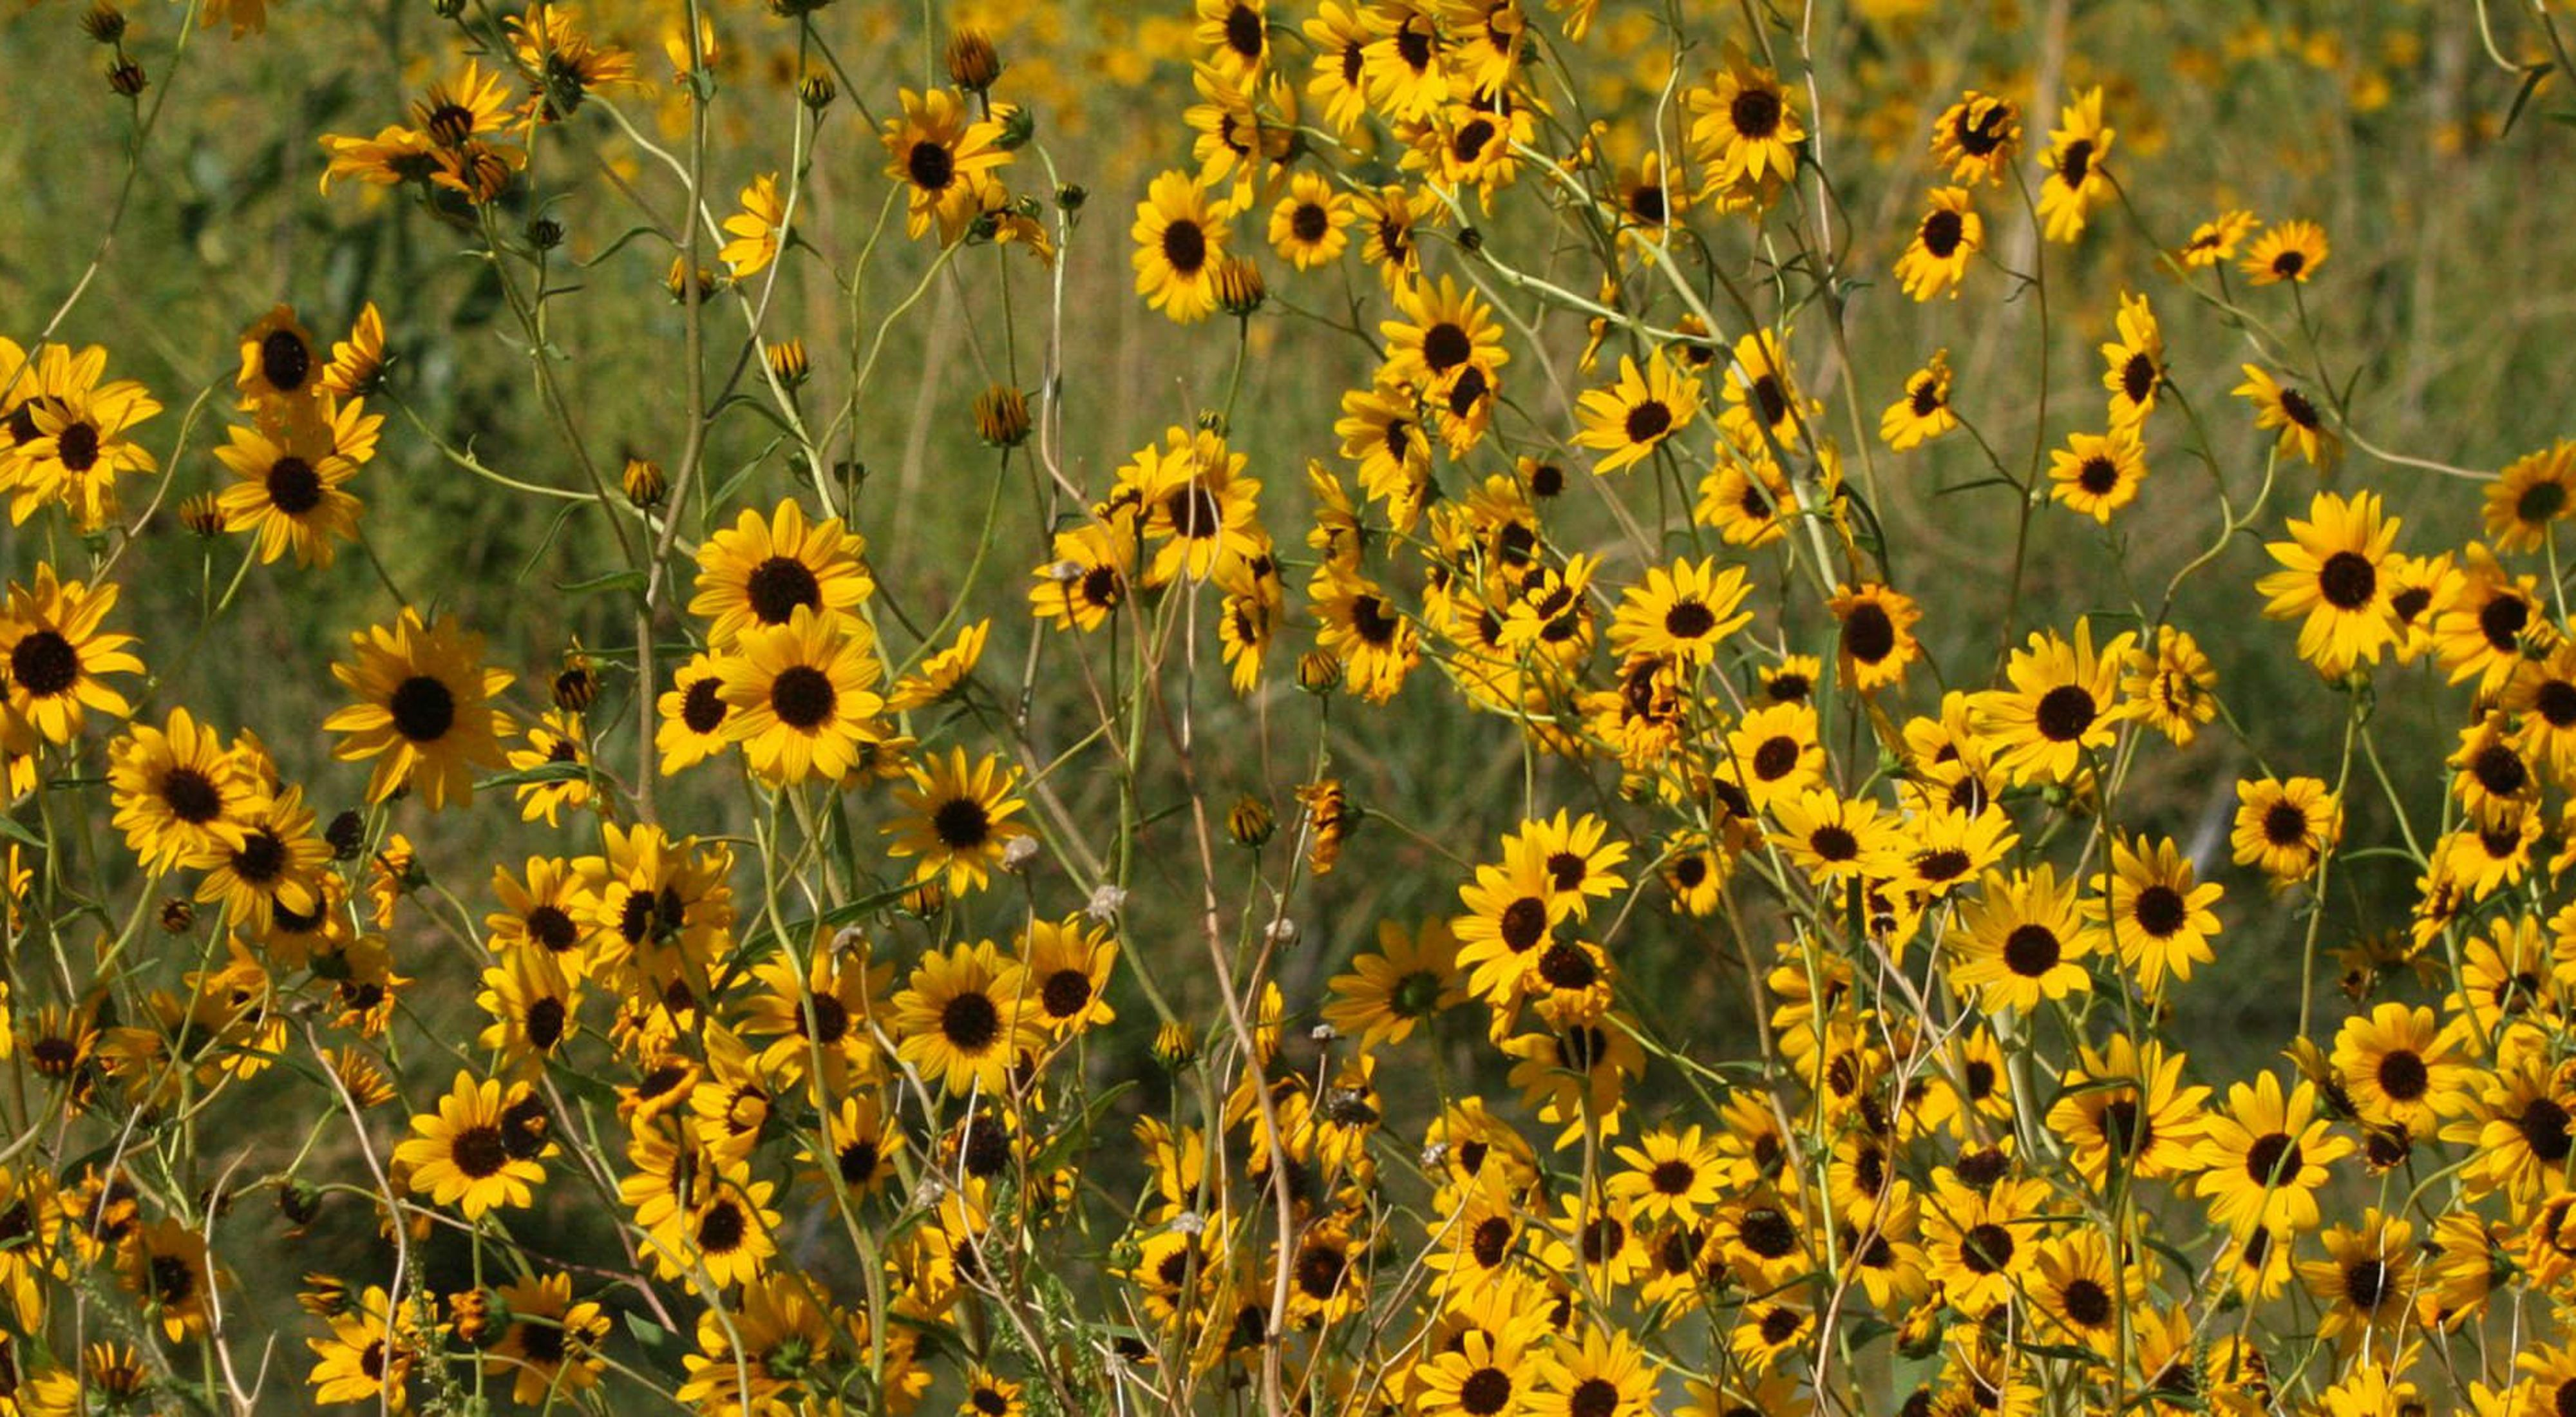 The rare Pecos sunflower thrives at Blue Hole CIenega.